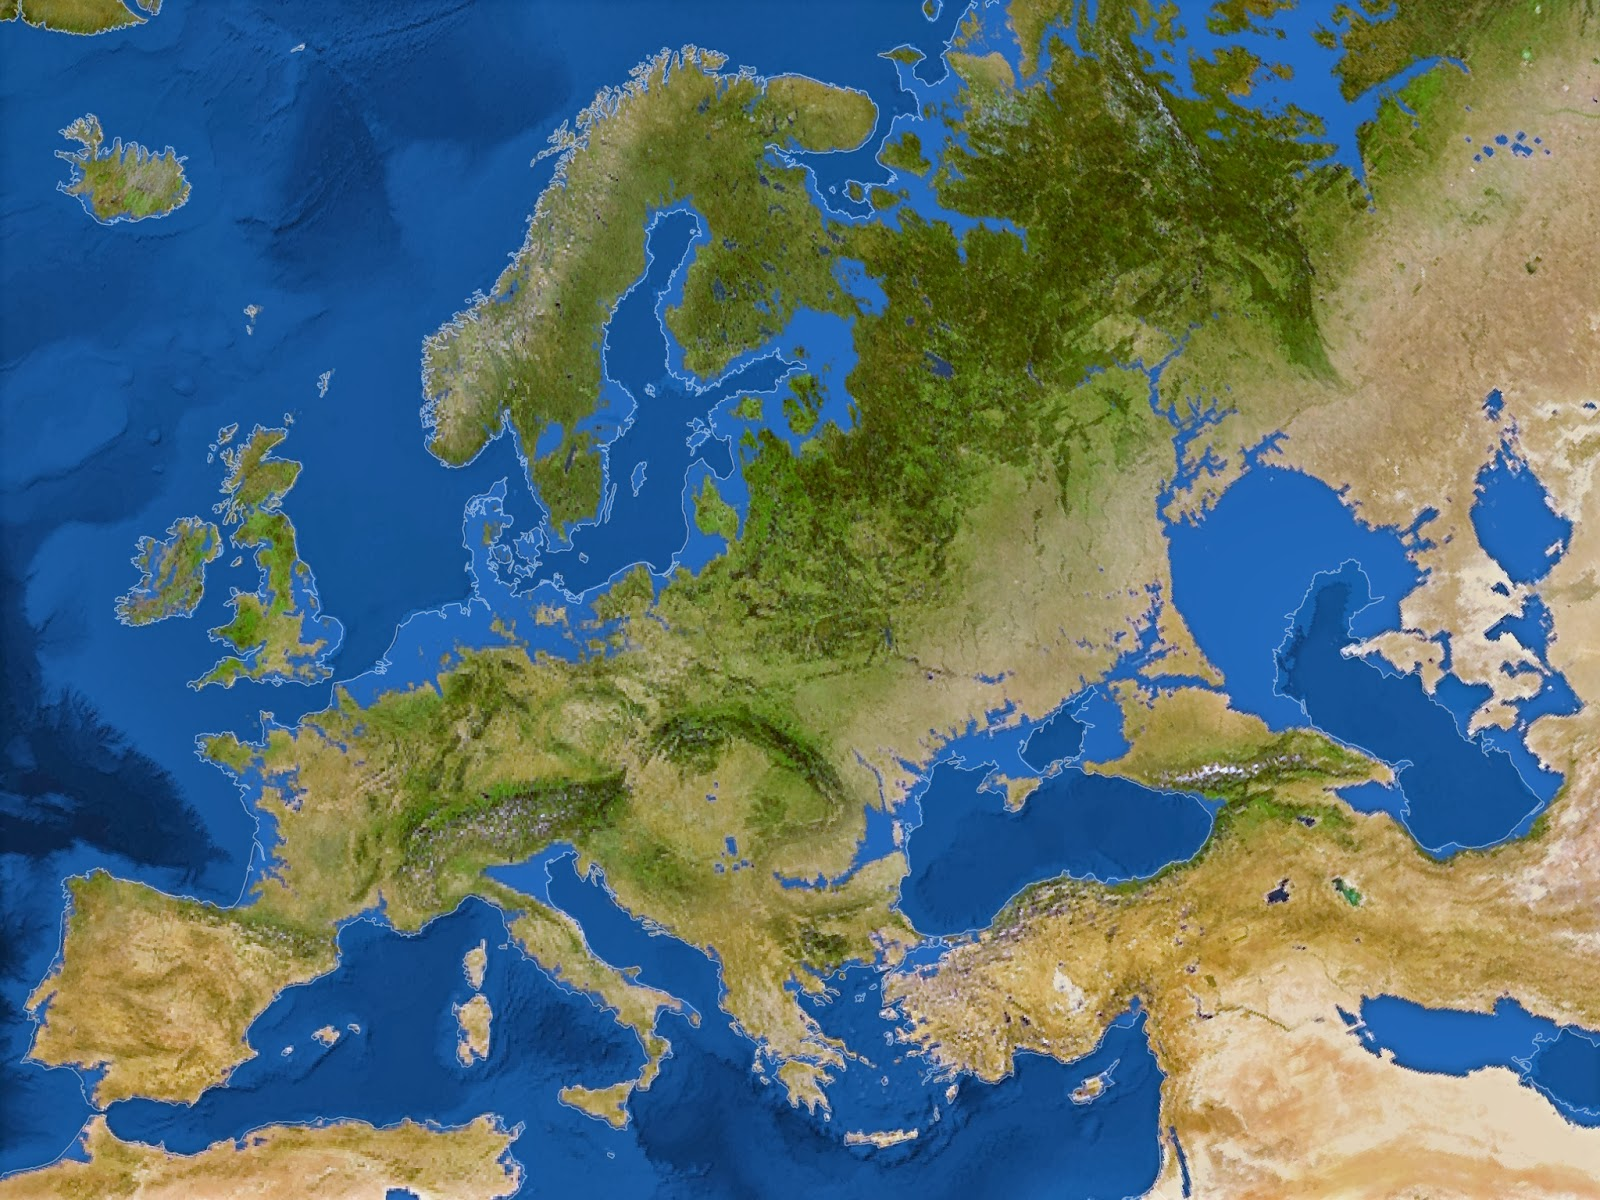 The anthroposea coastlines in an ice free world map of europe following a 216 foot sea level rise national geographic 2013 gumiabroncs Image collections